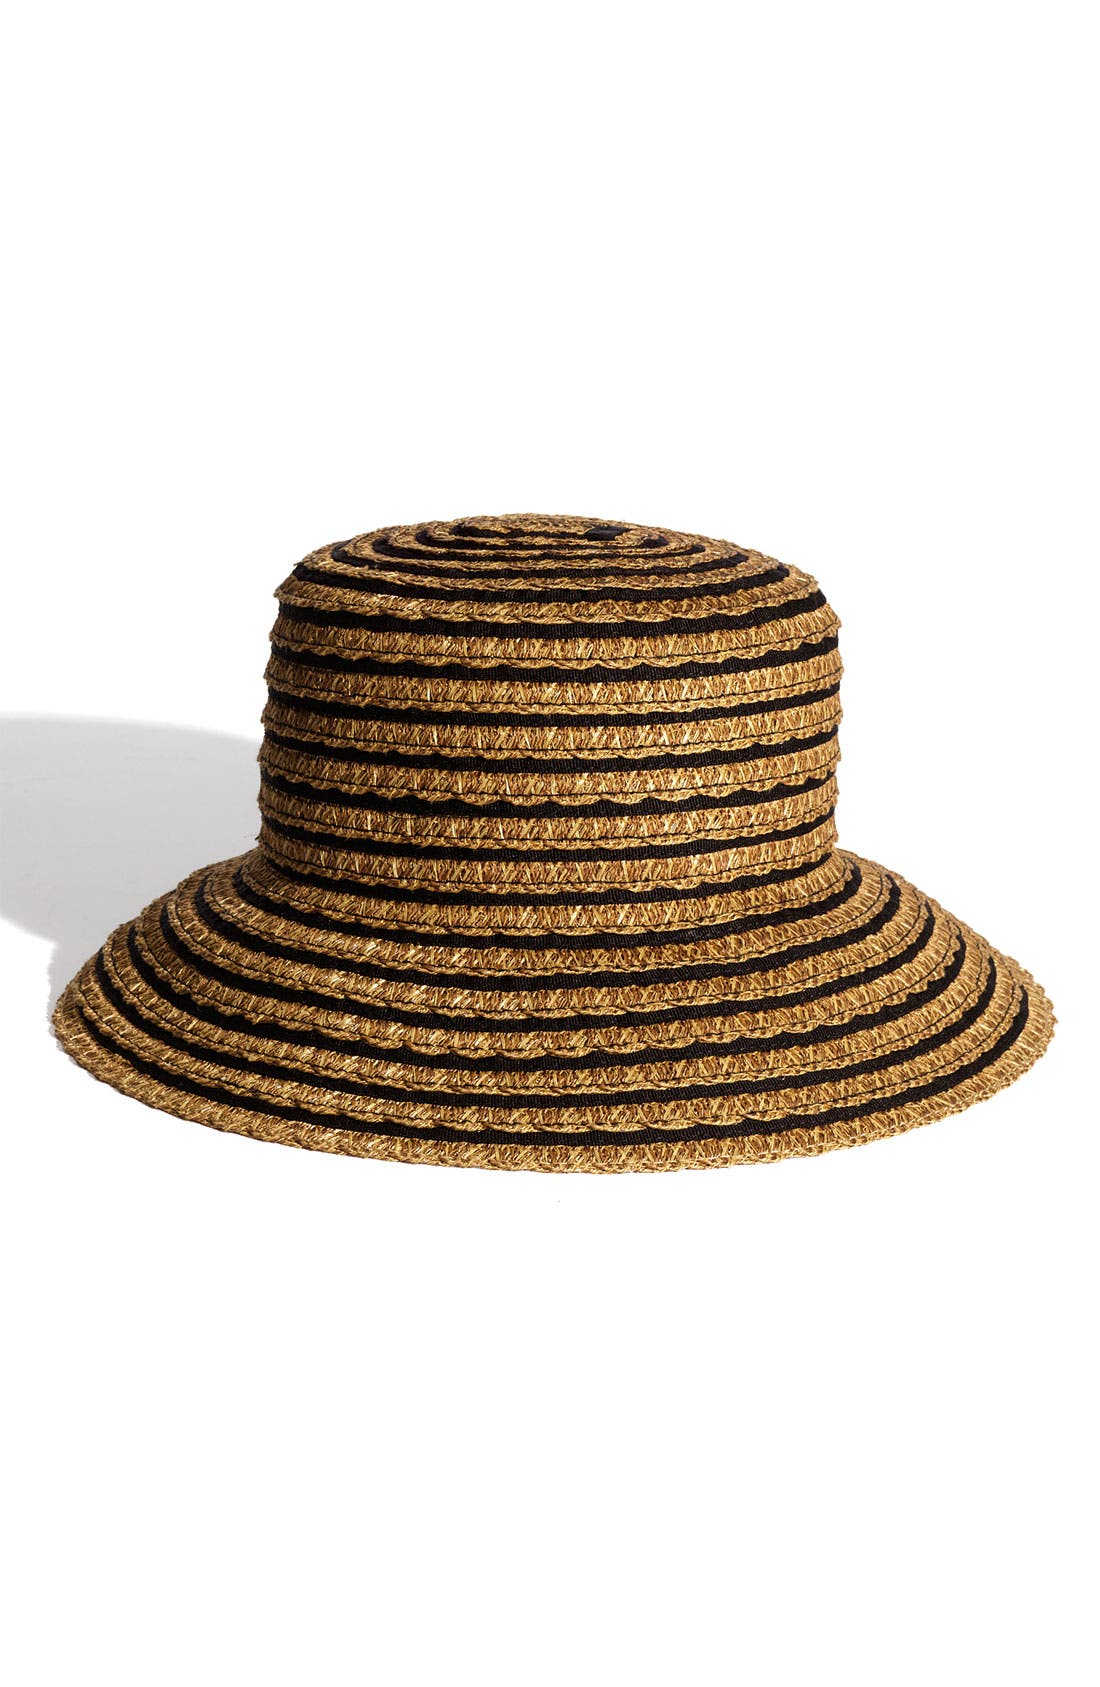 Alternate Image 1 Selected - Eric Javits 'Braid Dame' Hat